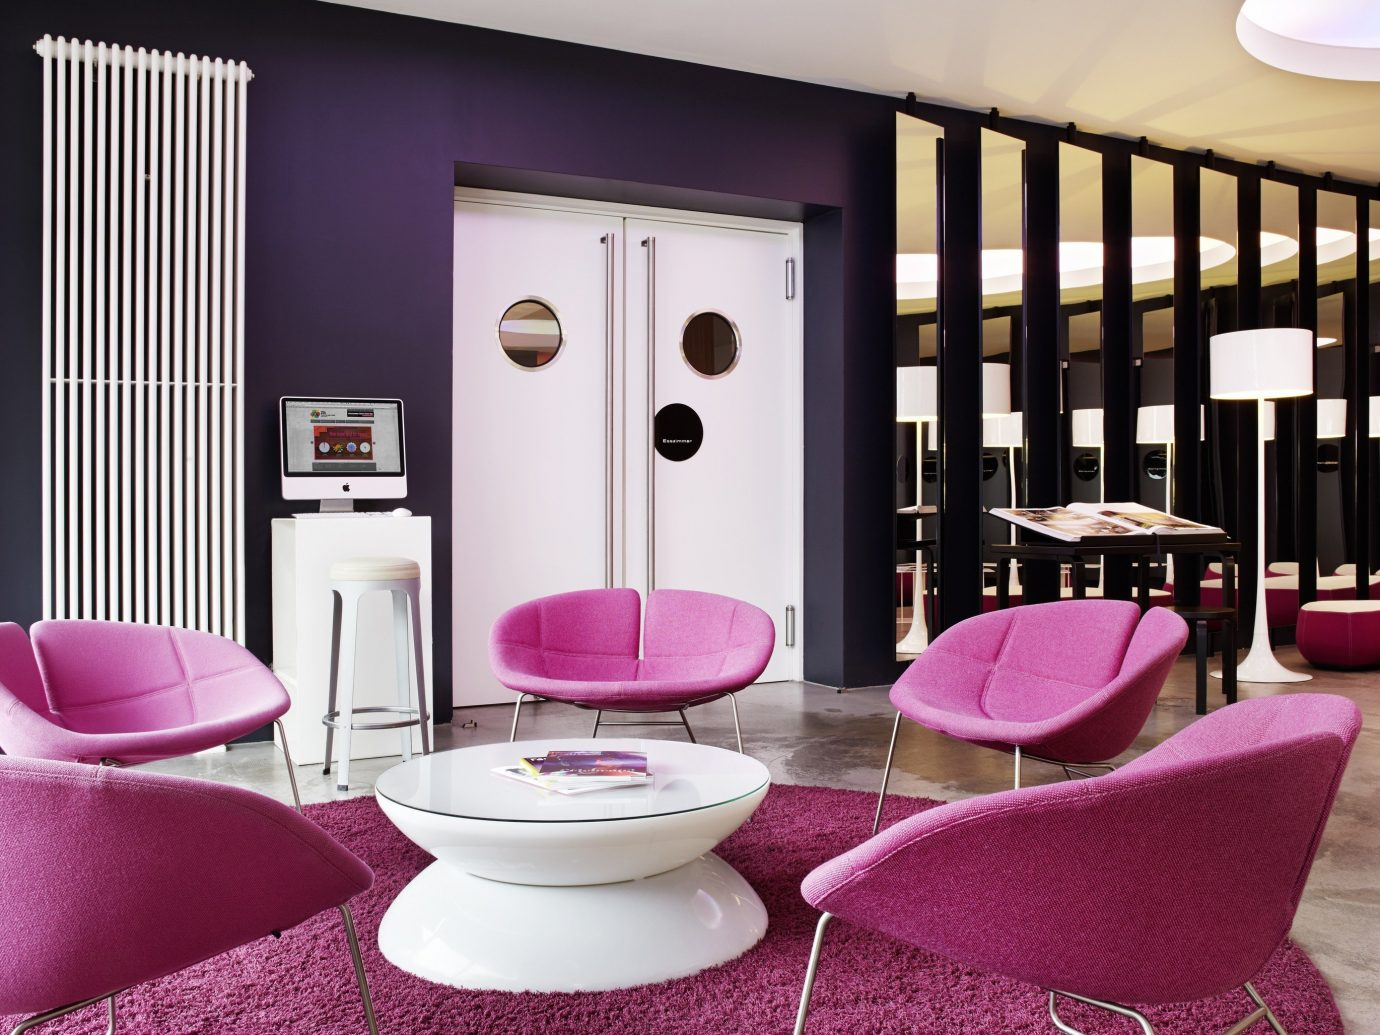 Travel Trends Trip Ideas pink room chair red furniture interior design purple living room Suite colored dining table